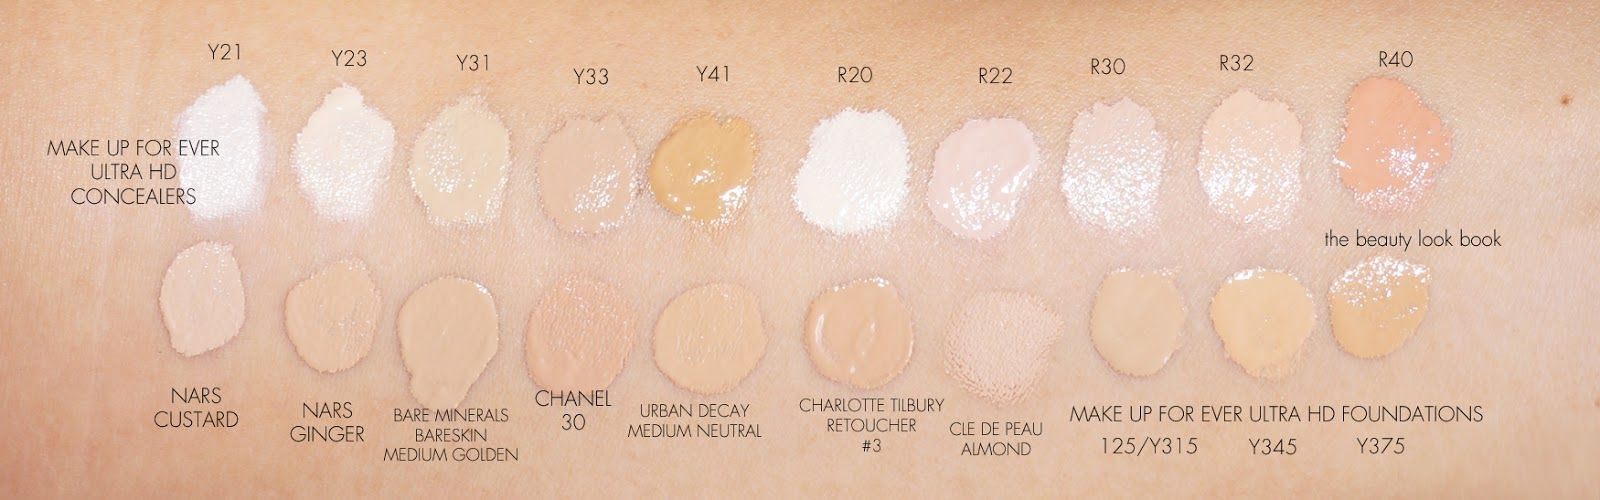 The Beauty Look Book Make Up For Ever Ultra Hd Concealer